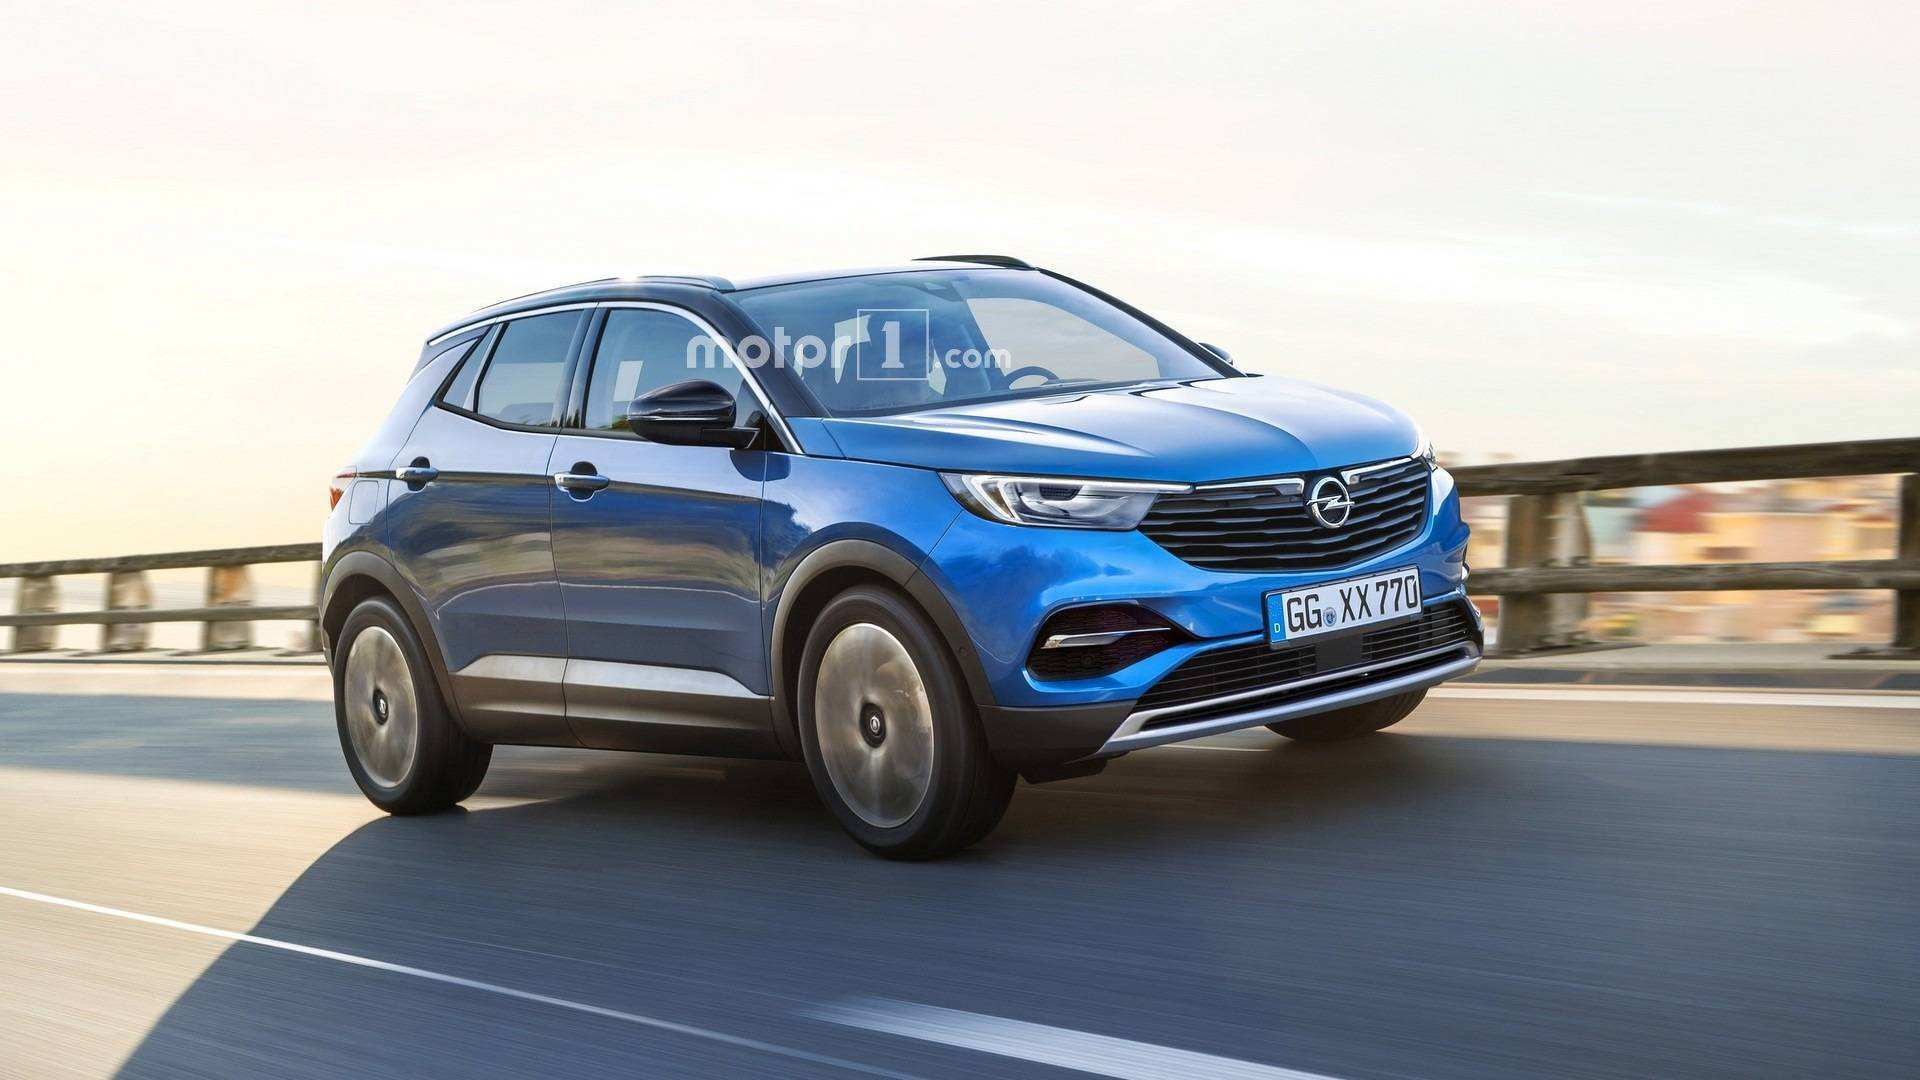 34 The Best Nuovo Suv Opel 2020 Model